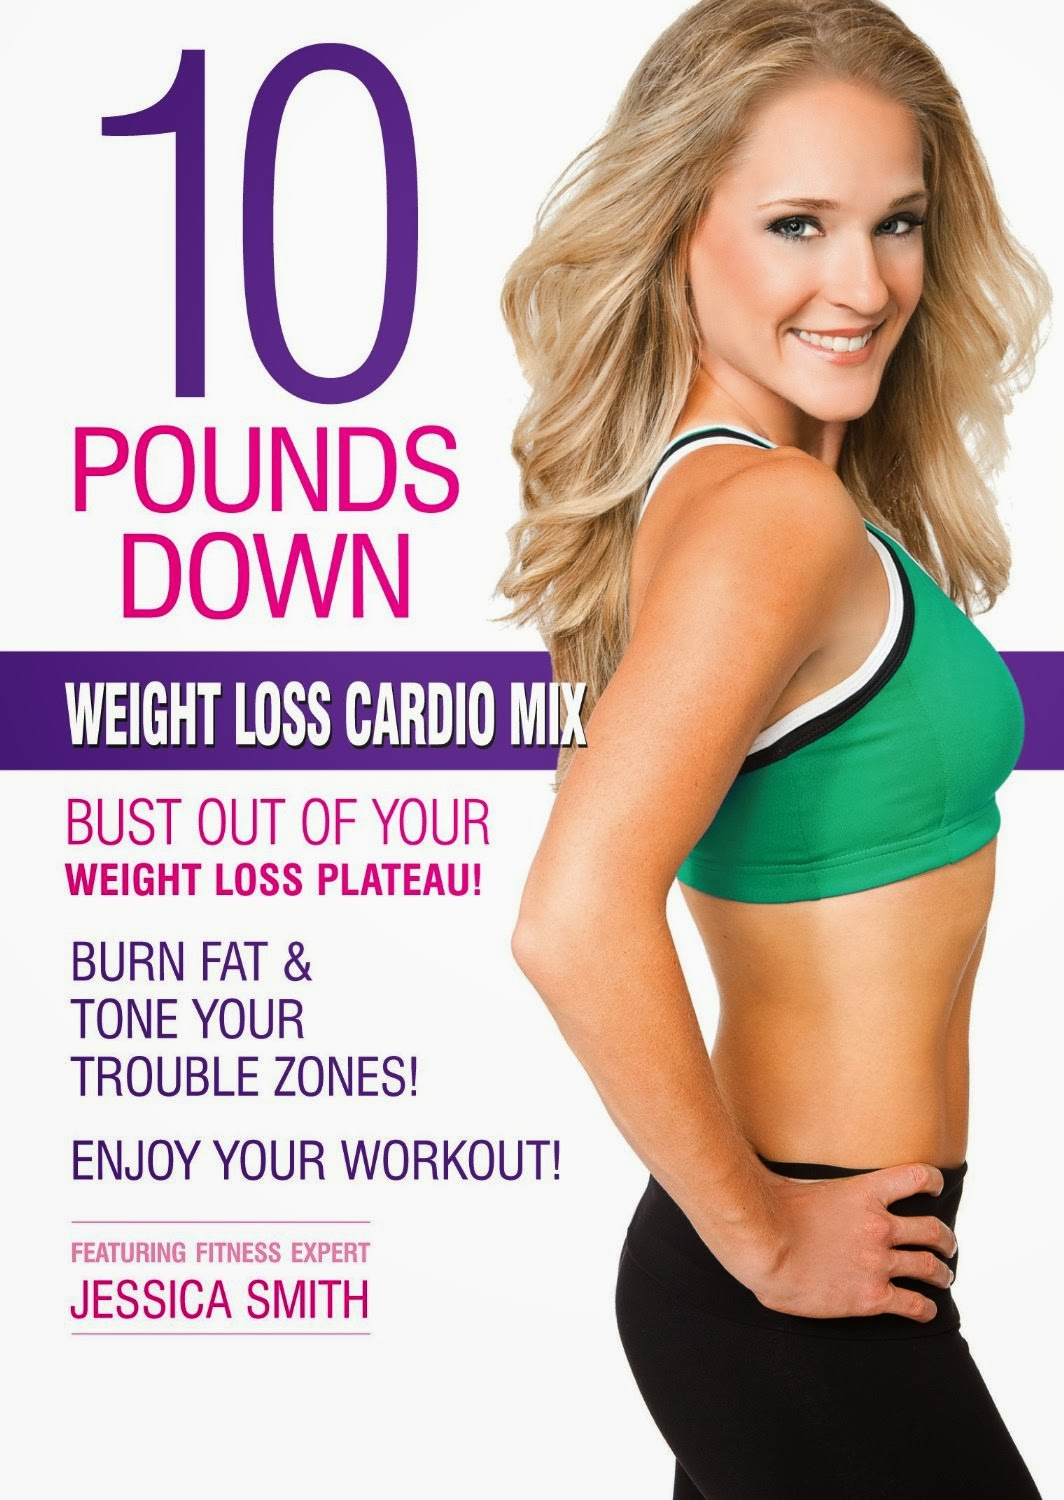 Saundra: Jessica Smith Weight Loss Cardio Mix - Thougths